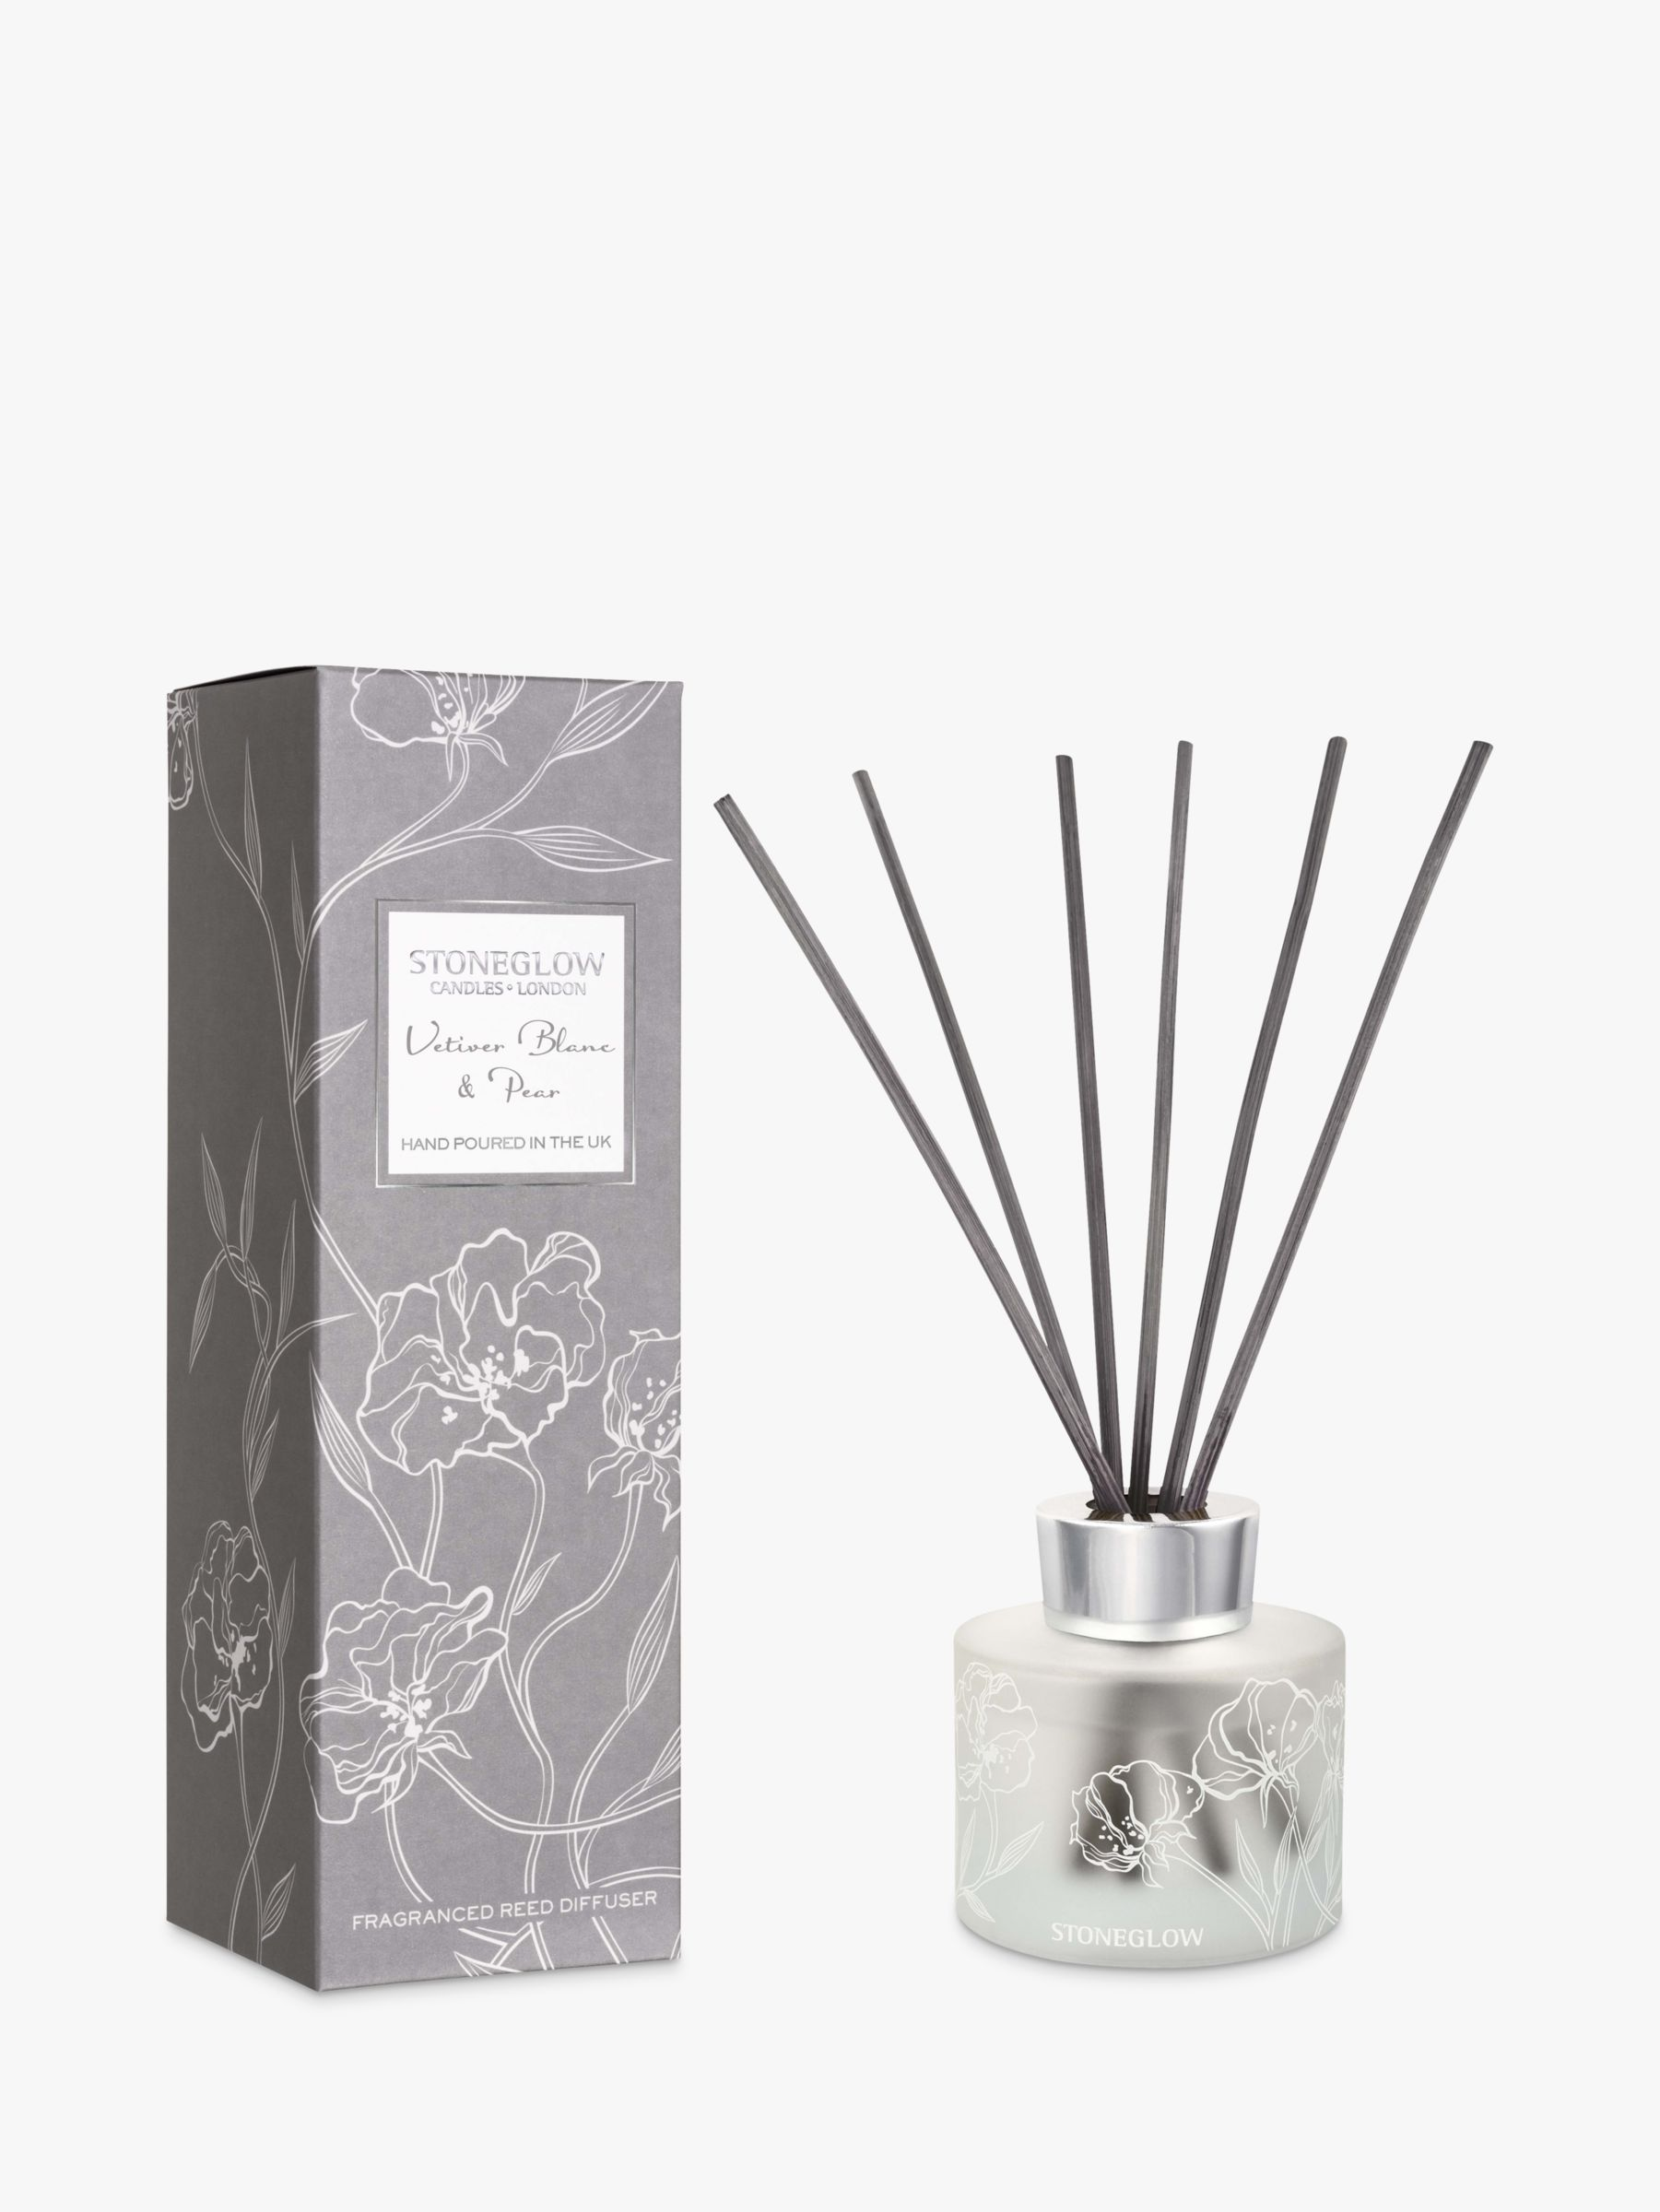 Stoneglow Stoneglow Day Flower Vetiver Blanc & Pear Reed Diffuser, 120ml